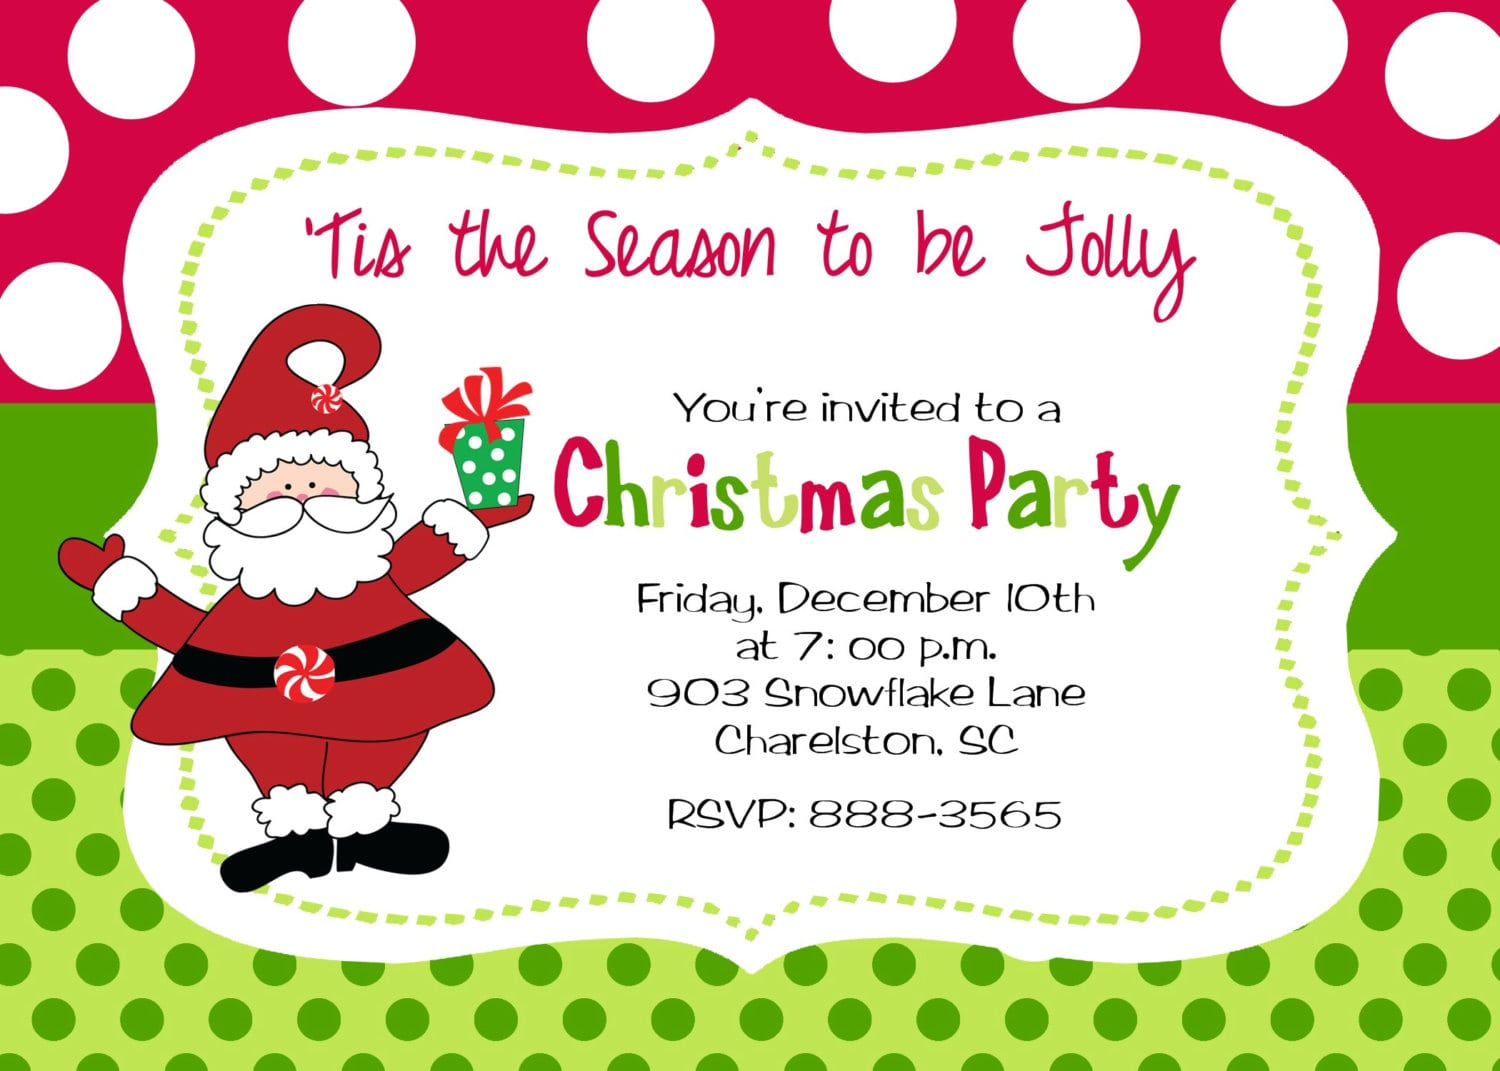 Printable Santa Clause Decals And Polka Dot Background With